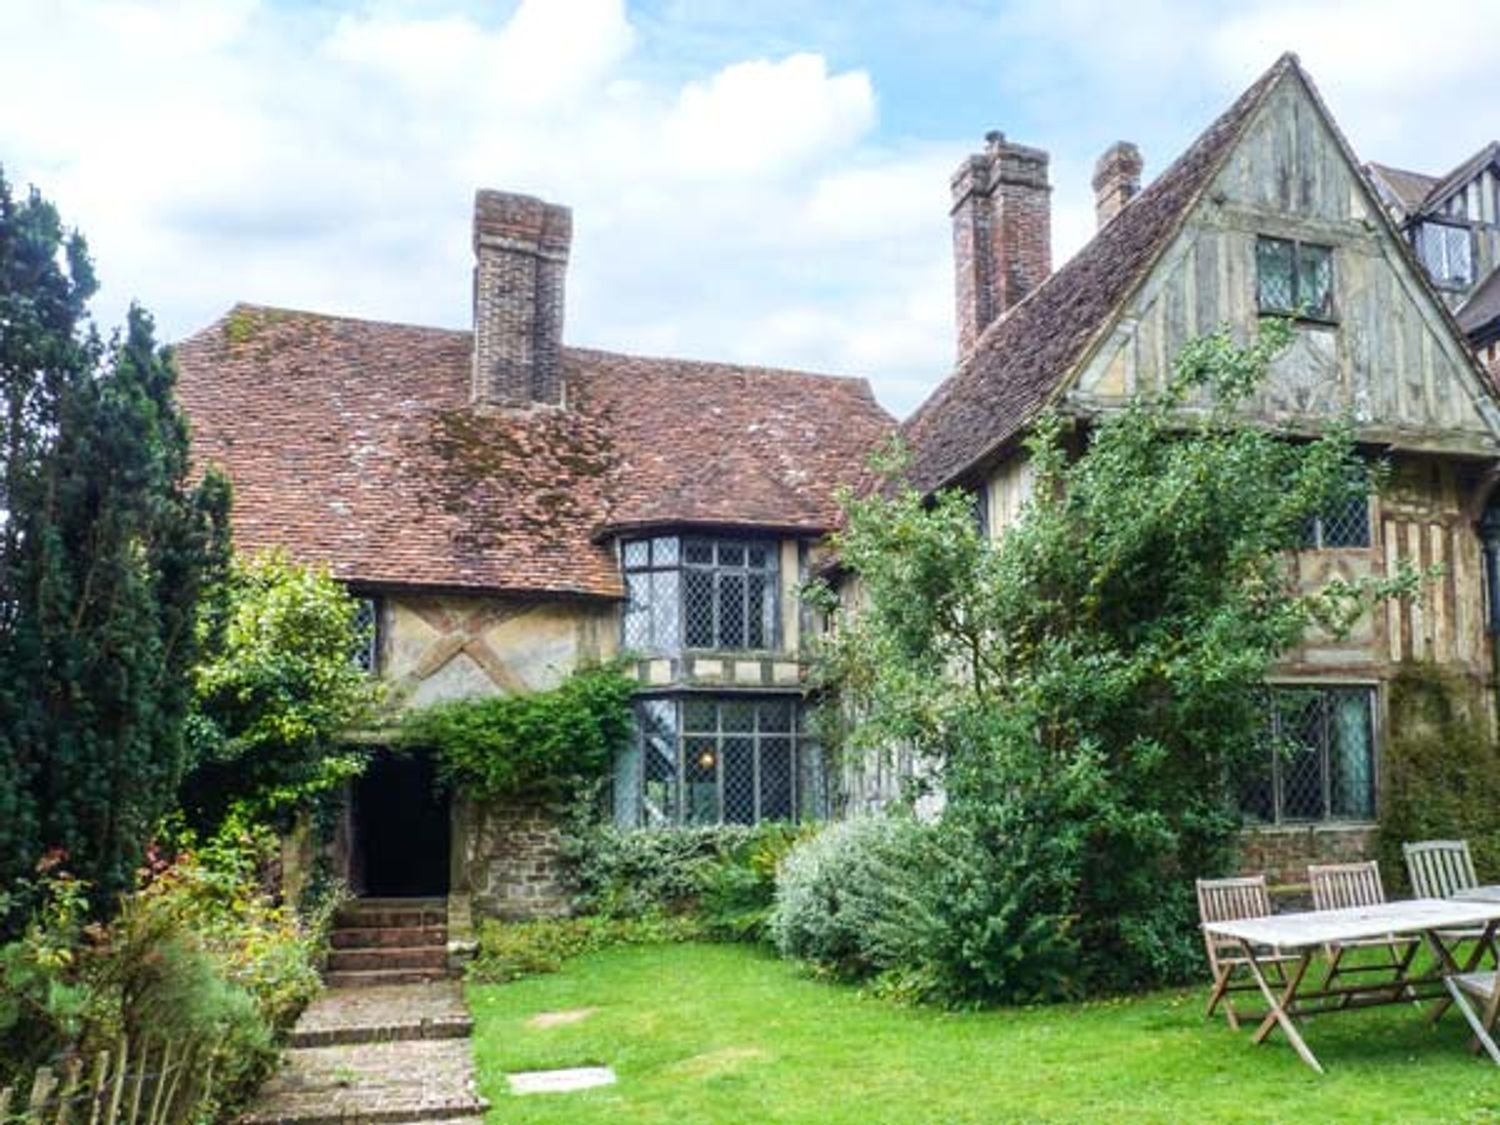 Holiday Cottages in Kent: Tudor Wing, Chiddingstone | Sykes Cottages